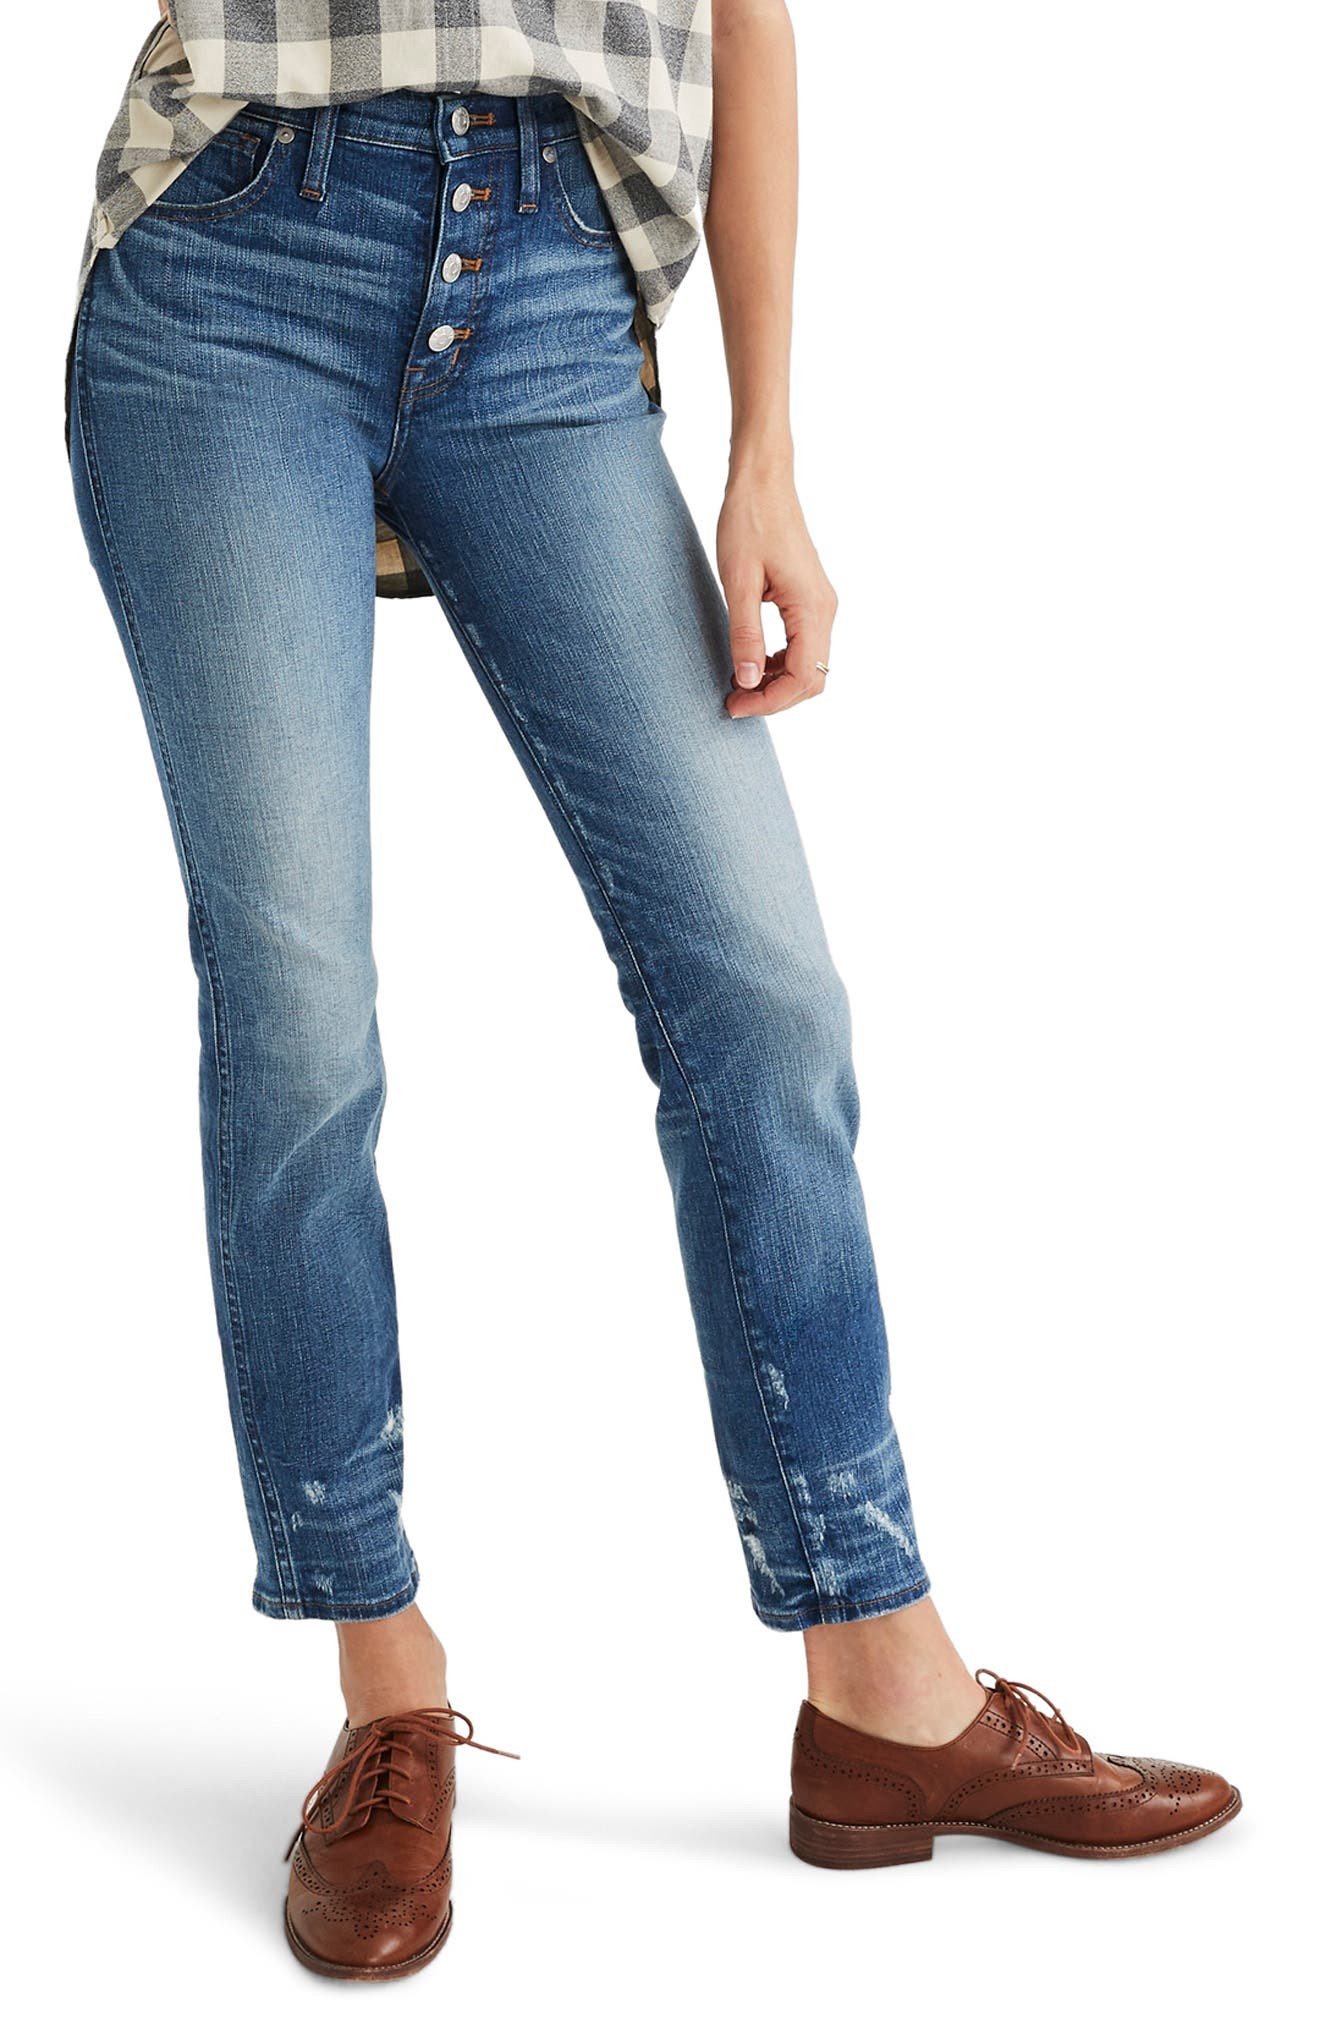 MADEWELL, Distressed Button Front High Waist Slim Straight Jeans, Main thumbnail 1, color, CAROLINE